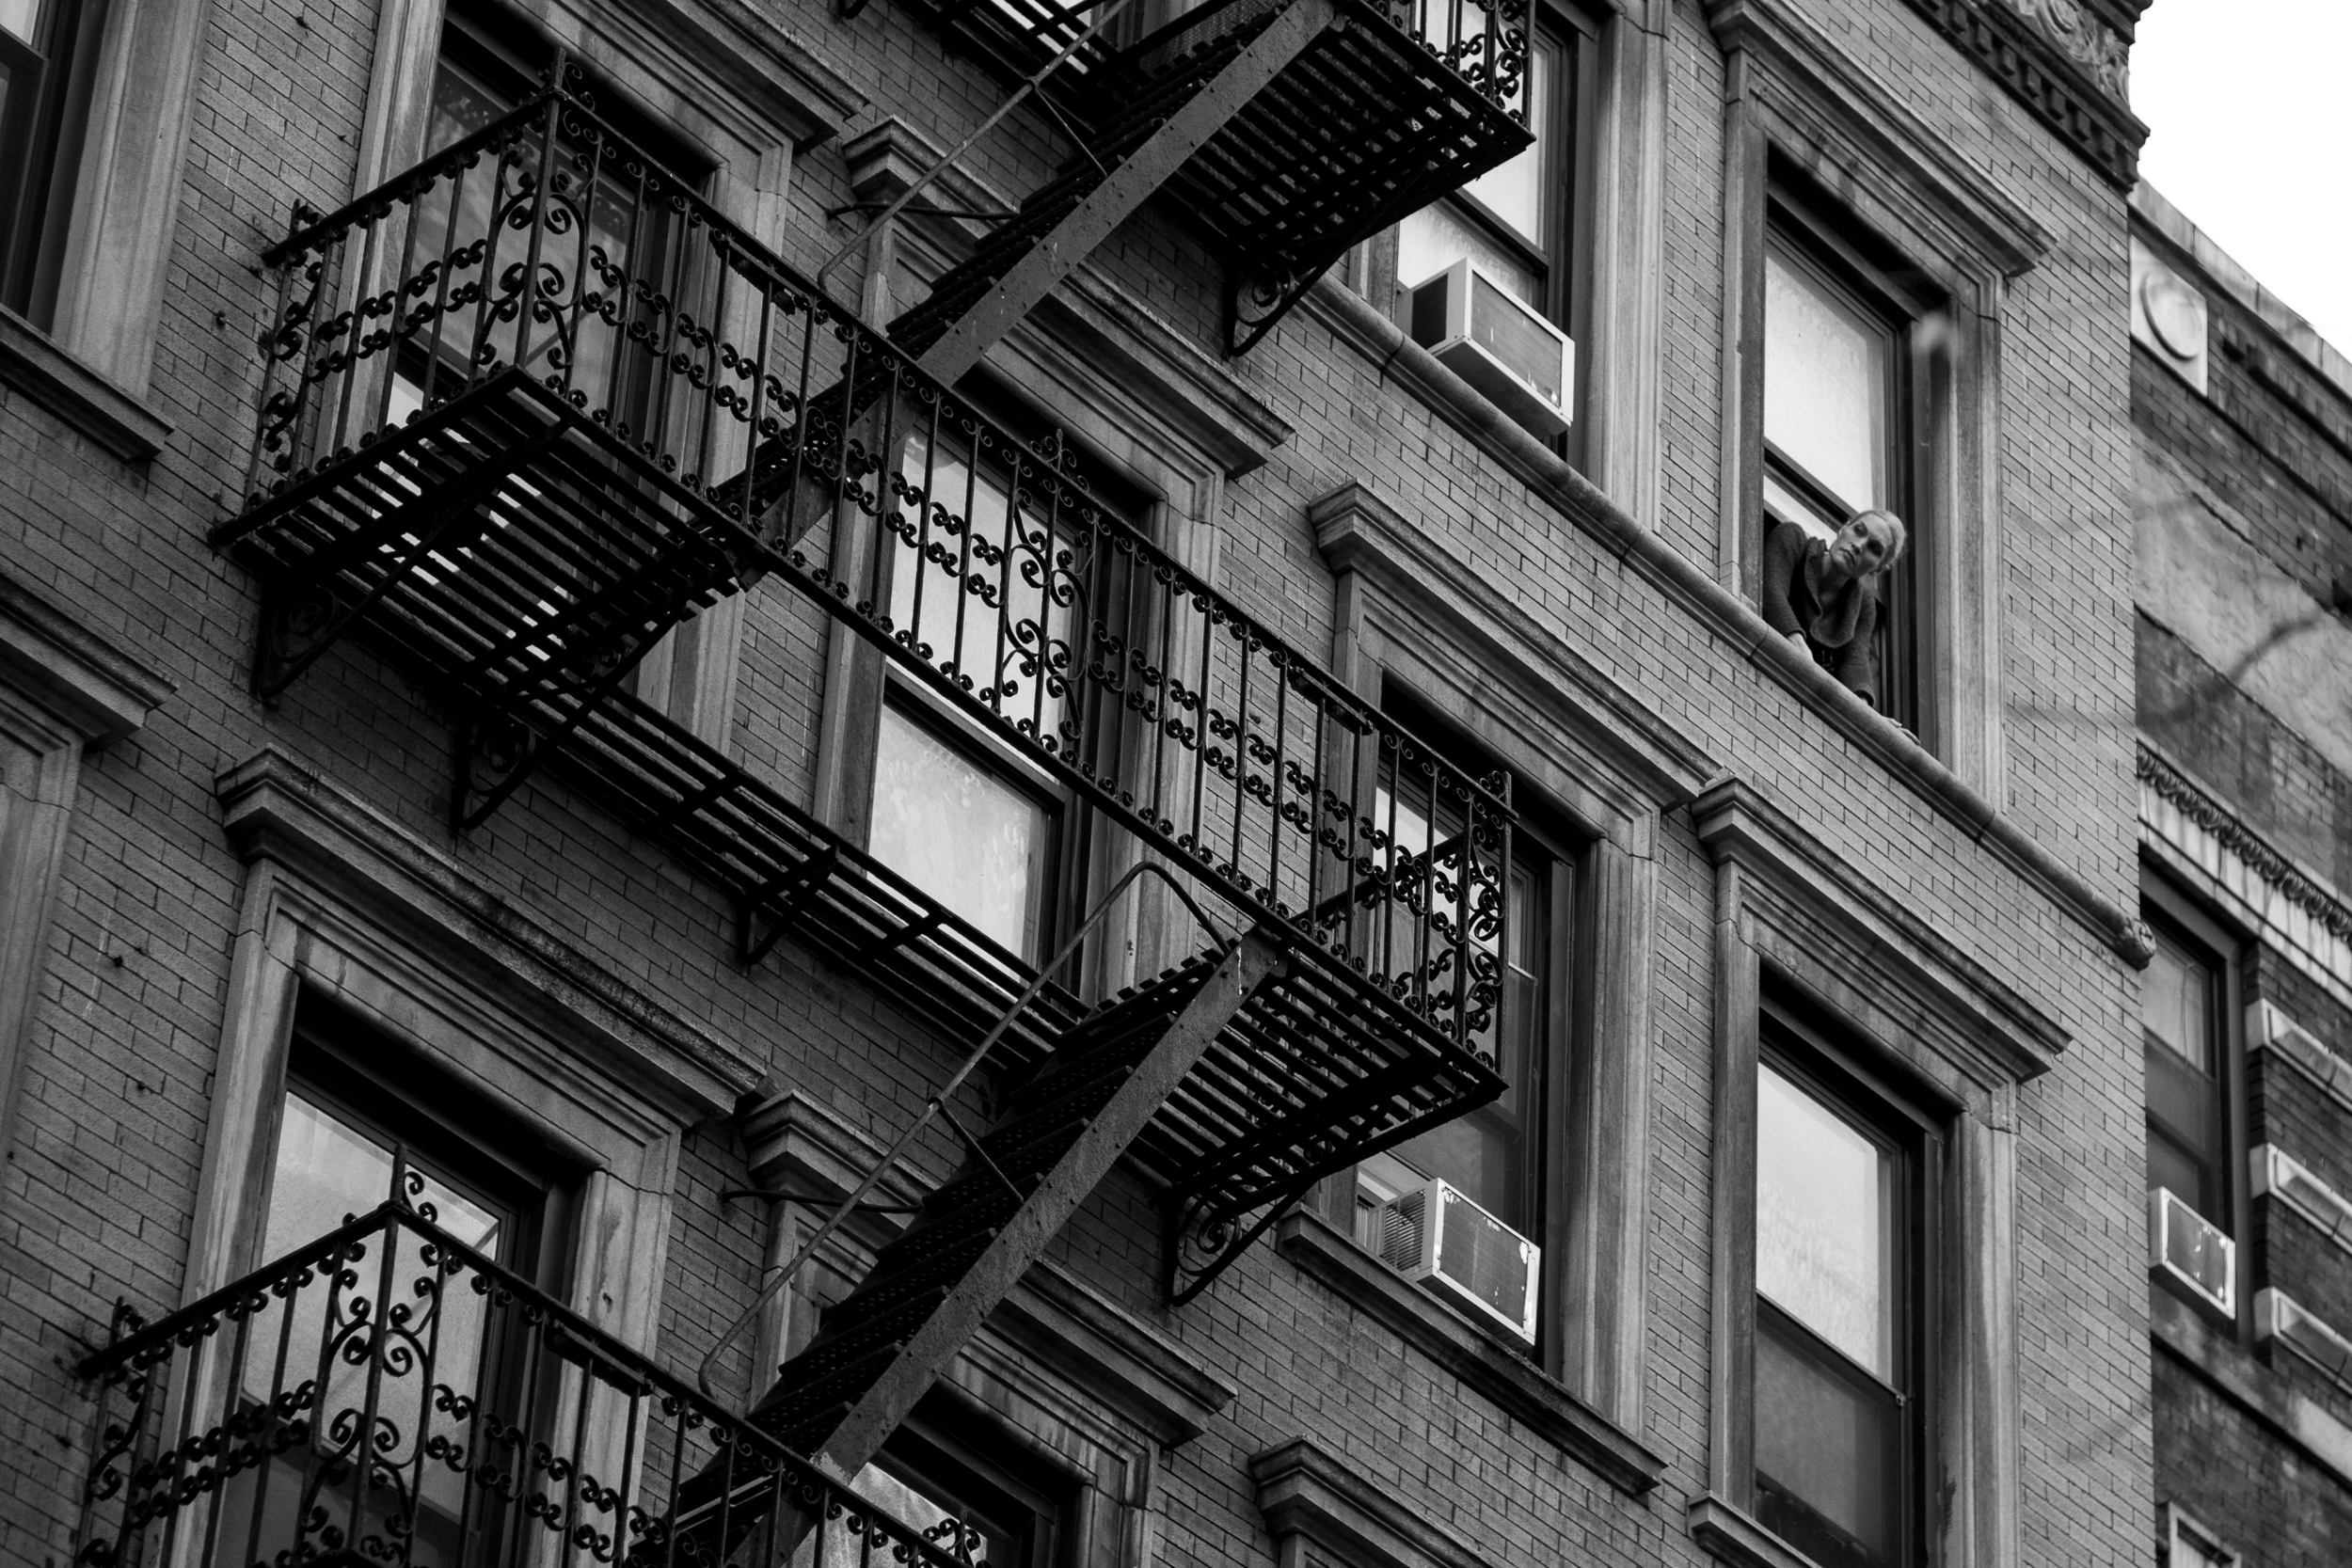 I spy.  A woman looks out from her window on the busy New York streets below. Leica M10 with 90mm Summicron f/2.